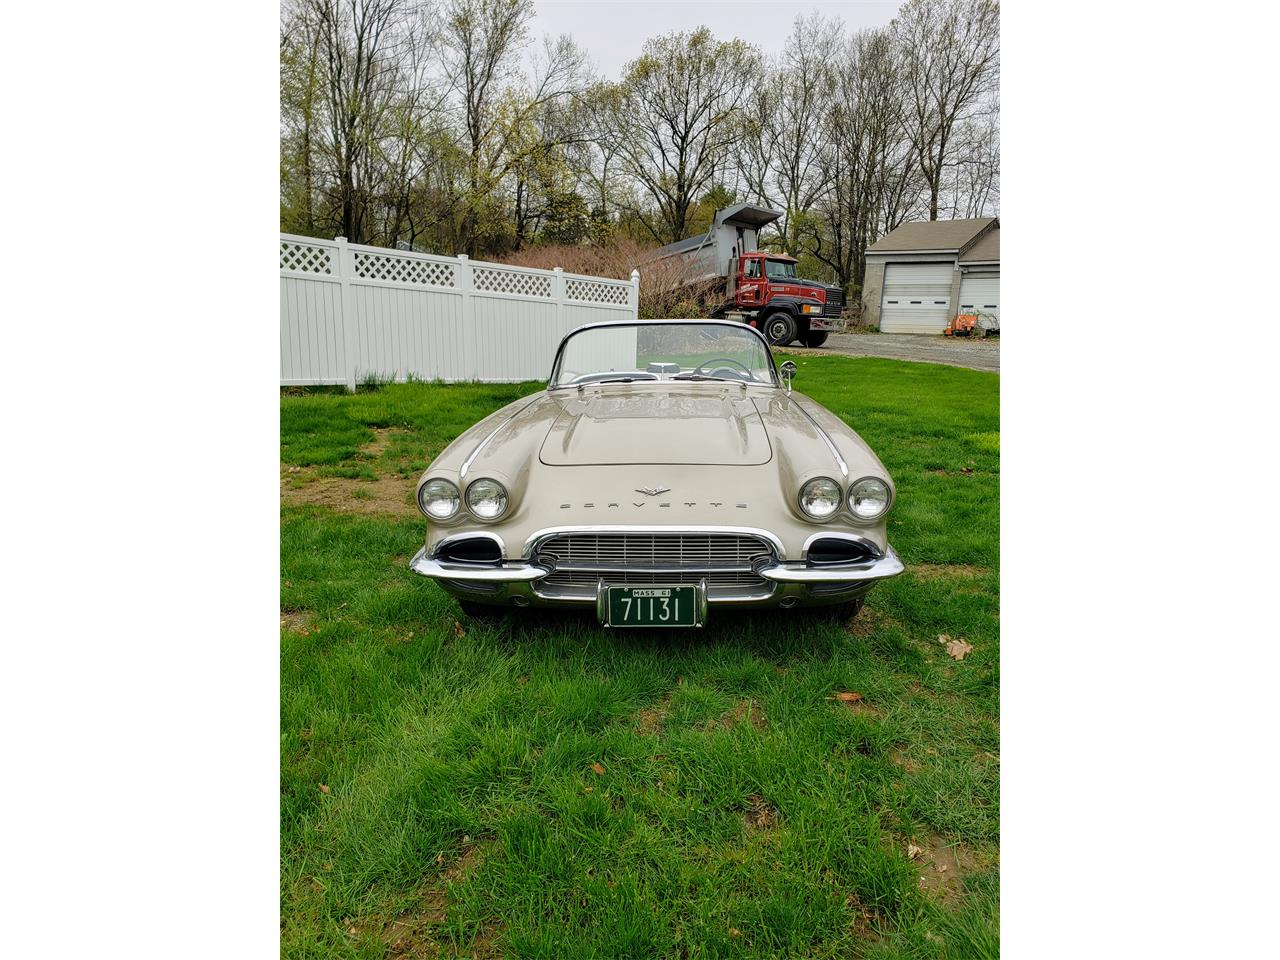 Large Picture of Classic '61 Chevrolet Corvette located in Marlboro Massachusetts - $58,000.00 Offered by a Private Seller - Q0QW